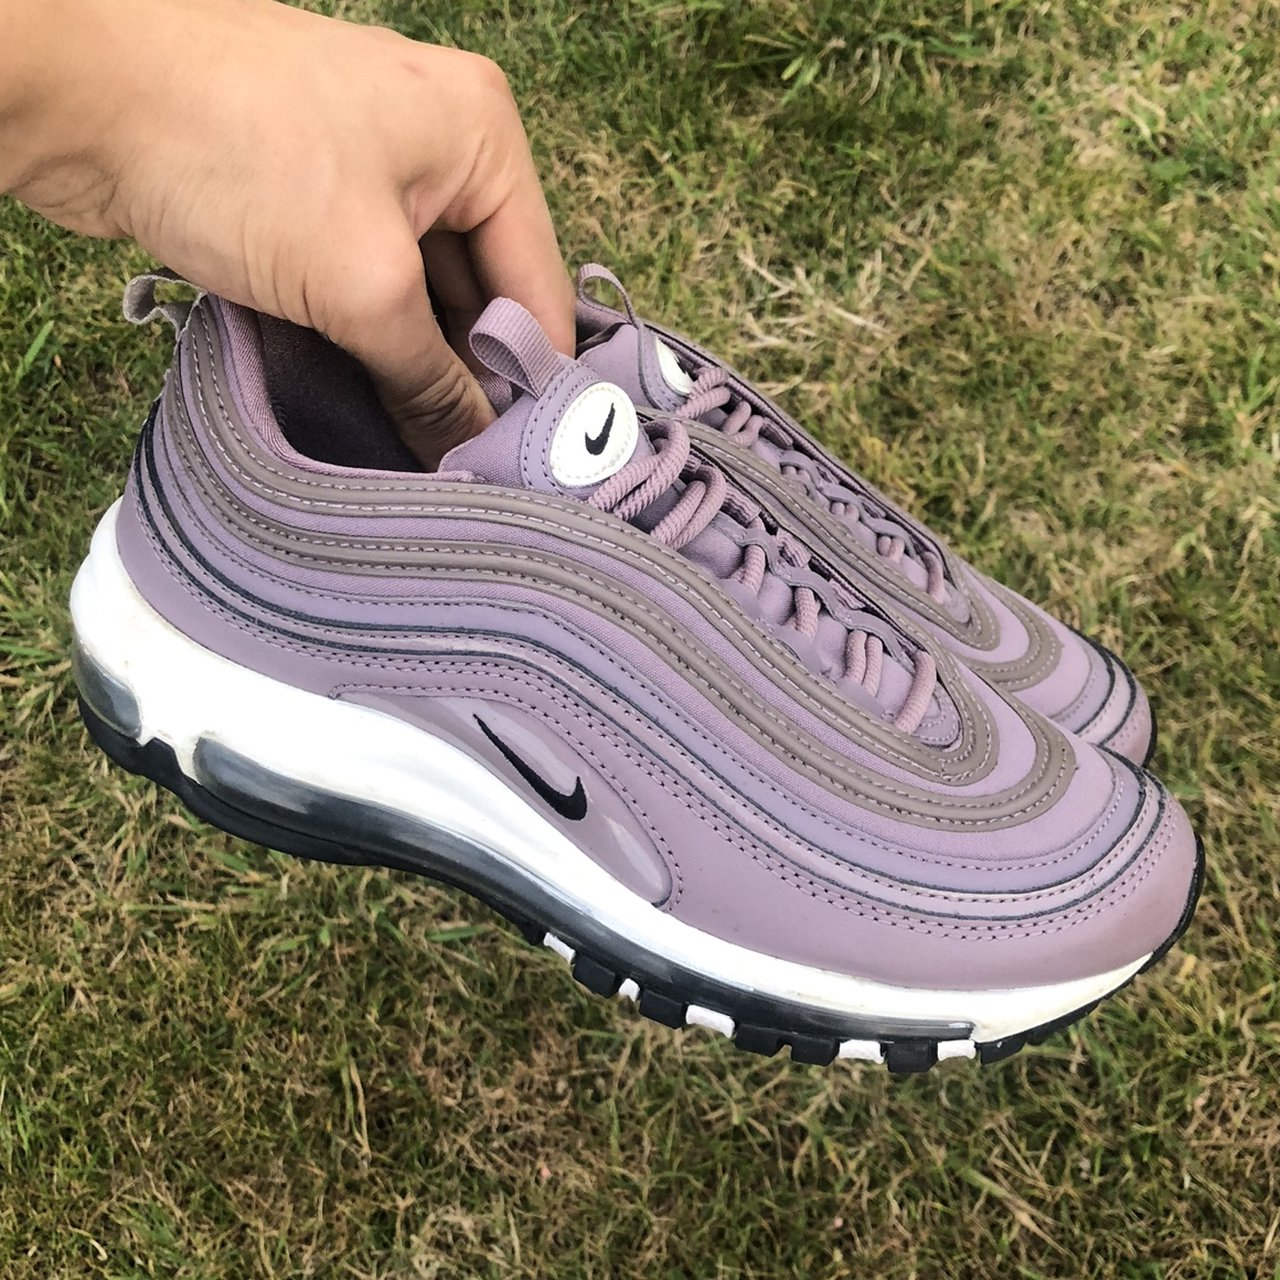 Limited Edition Nike 97s Reflective 3m